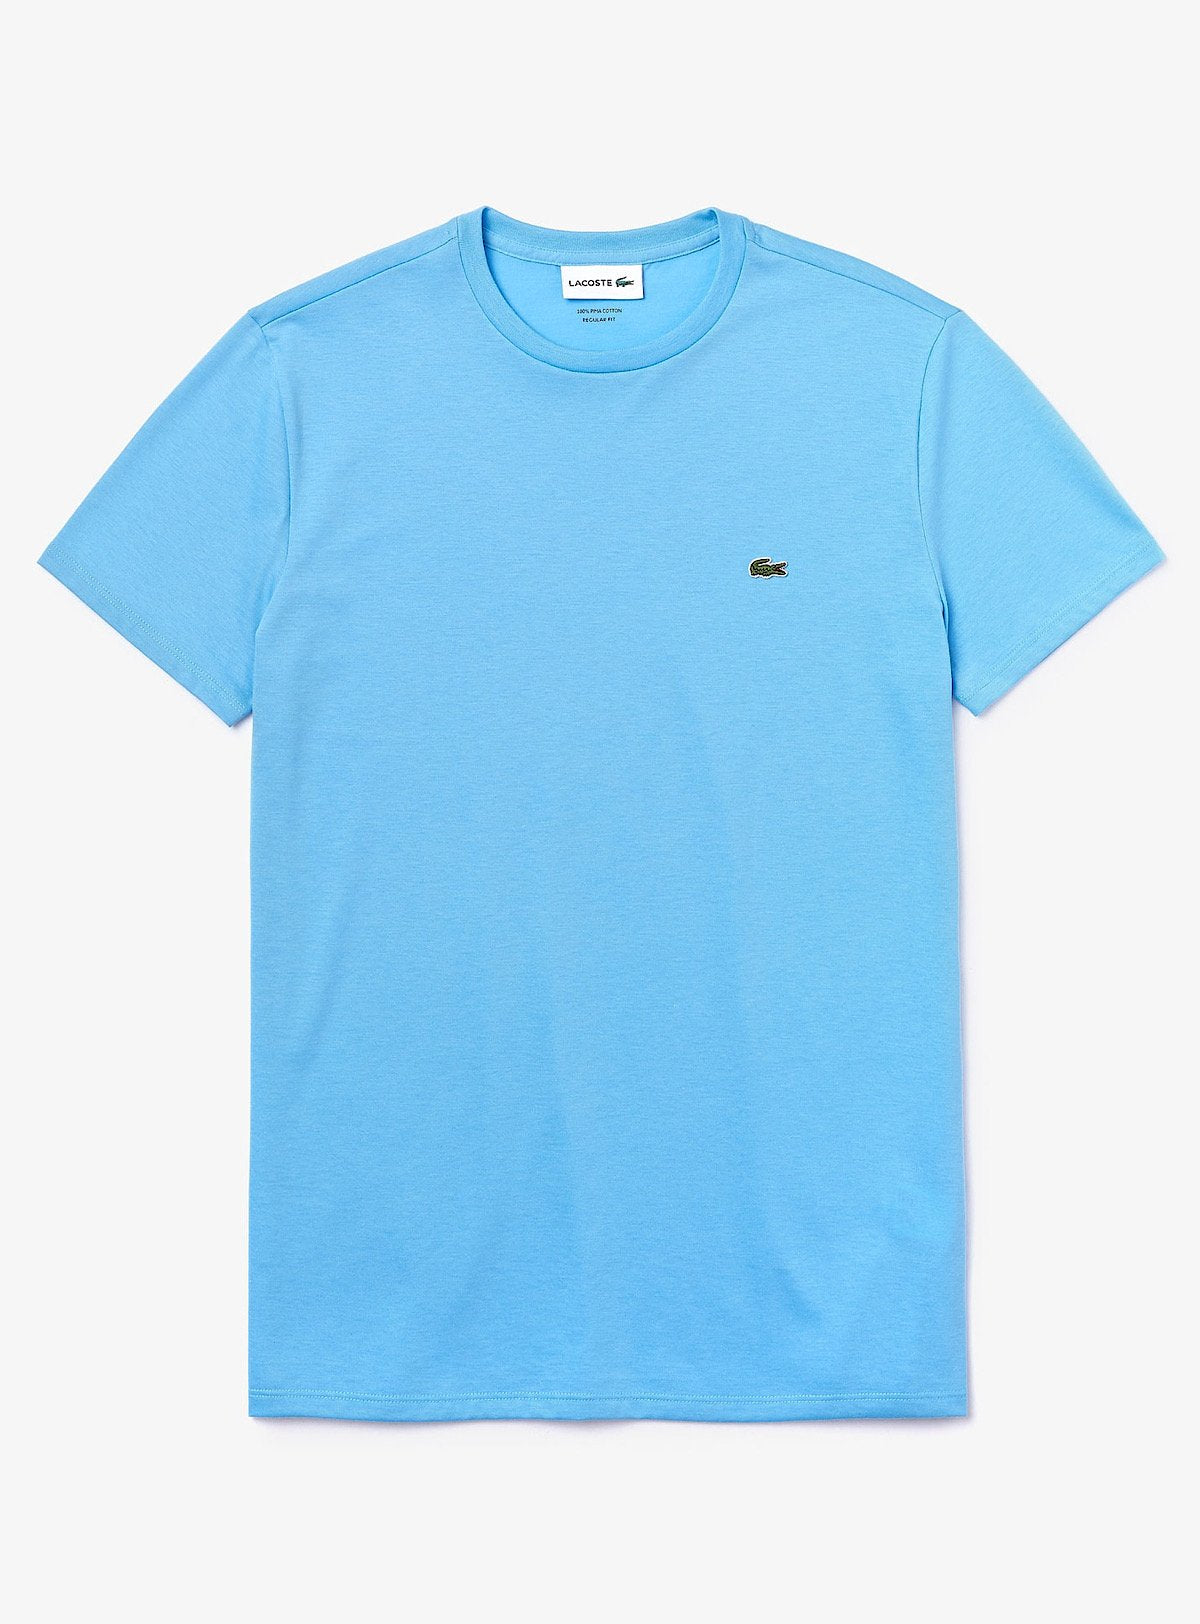 Lacoste T-Shirt - Crew - Baby Blue 709 - TH6709